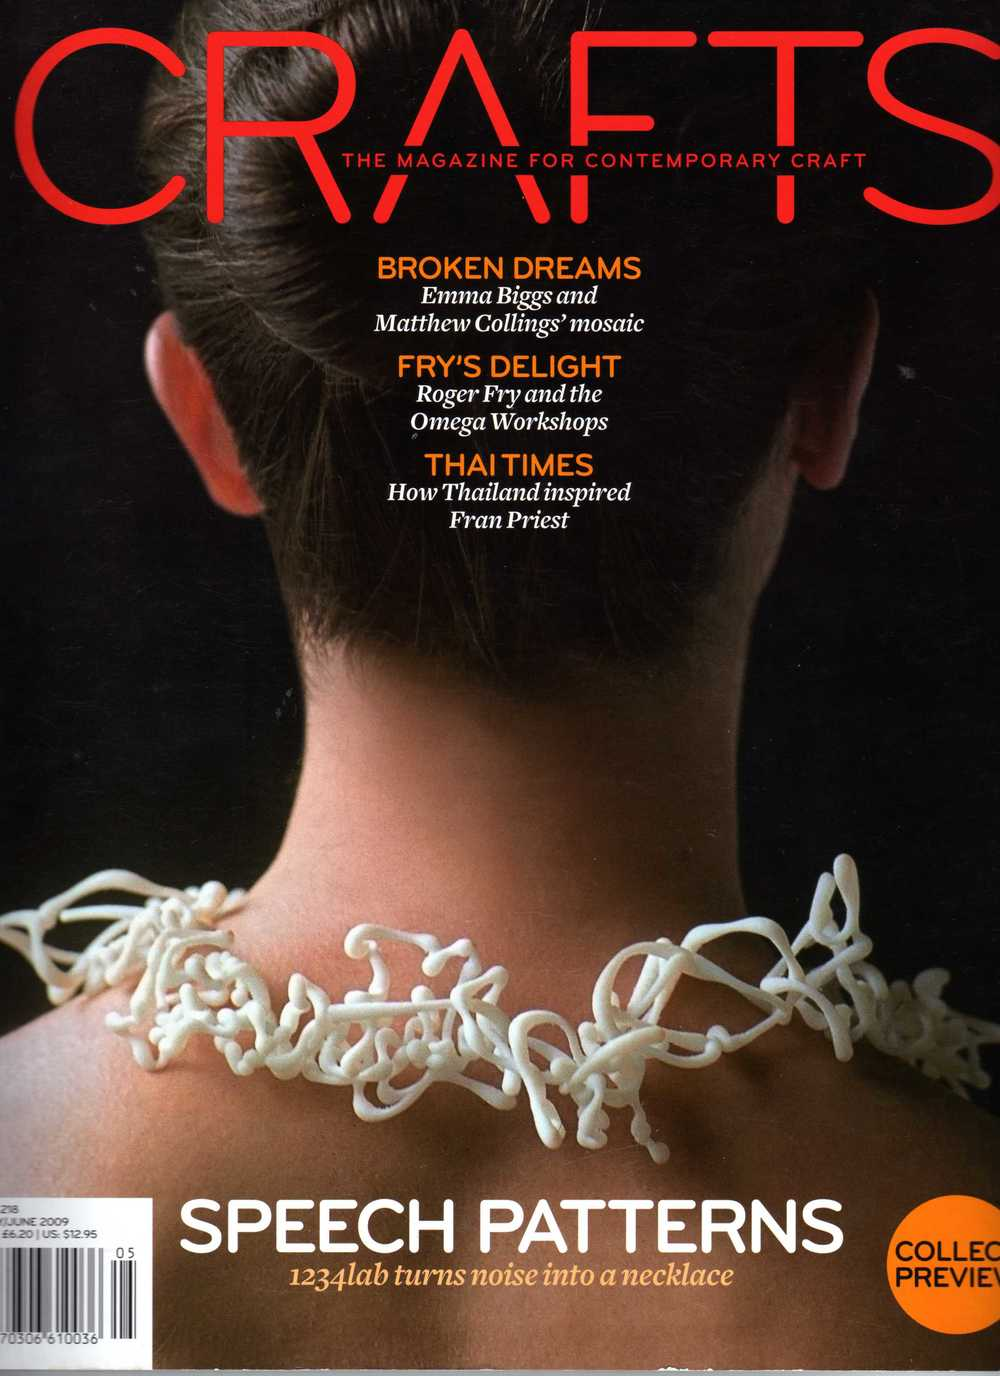 Crafts cover june 2010.jpg